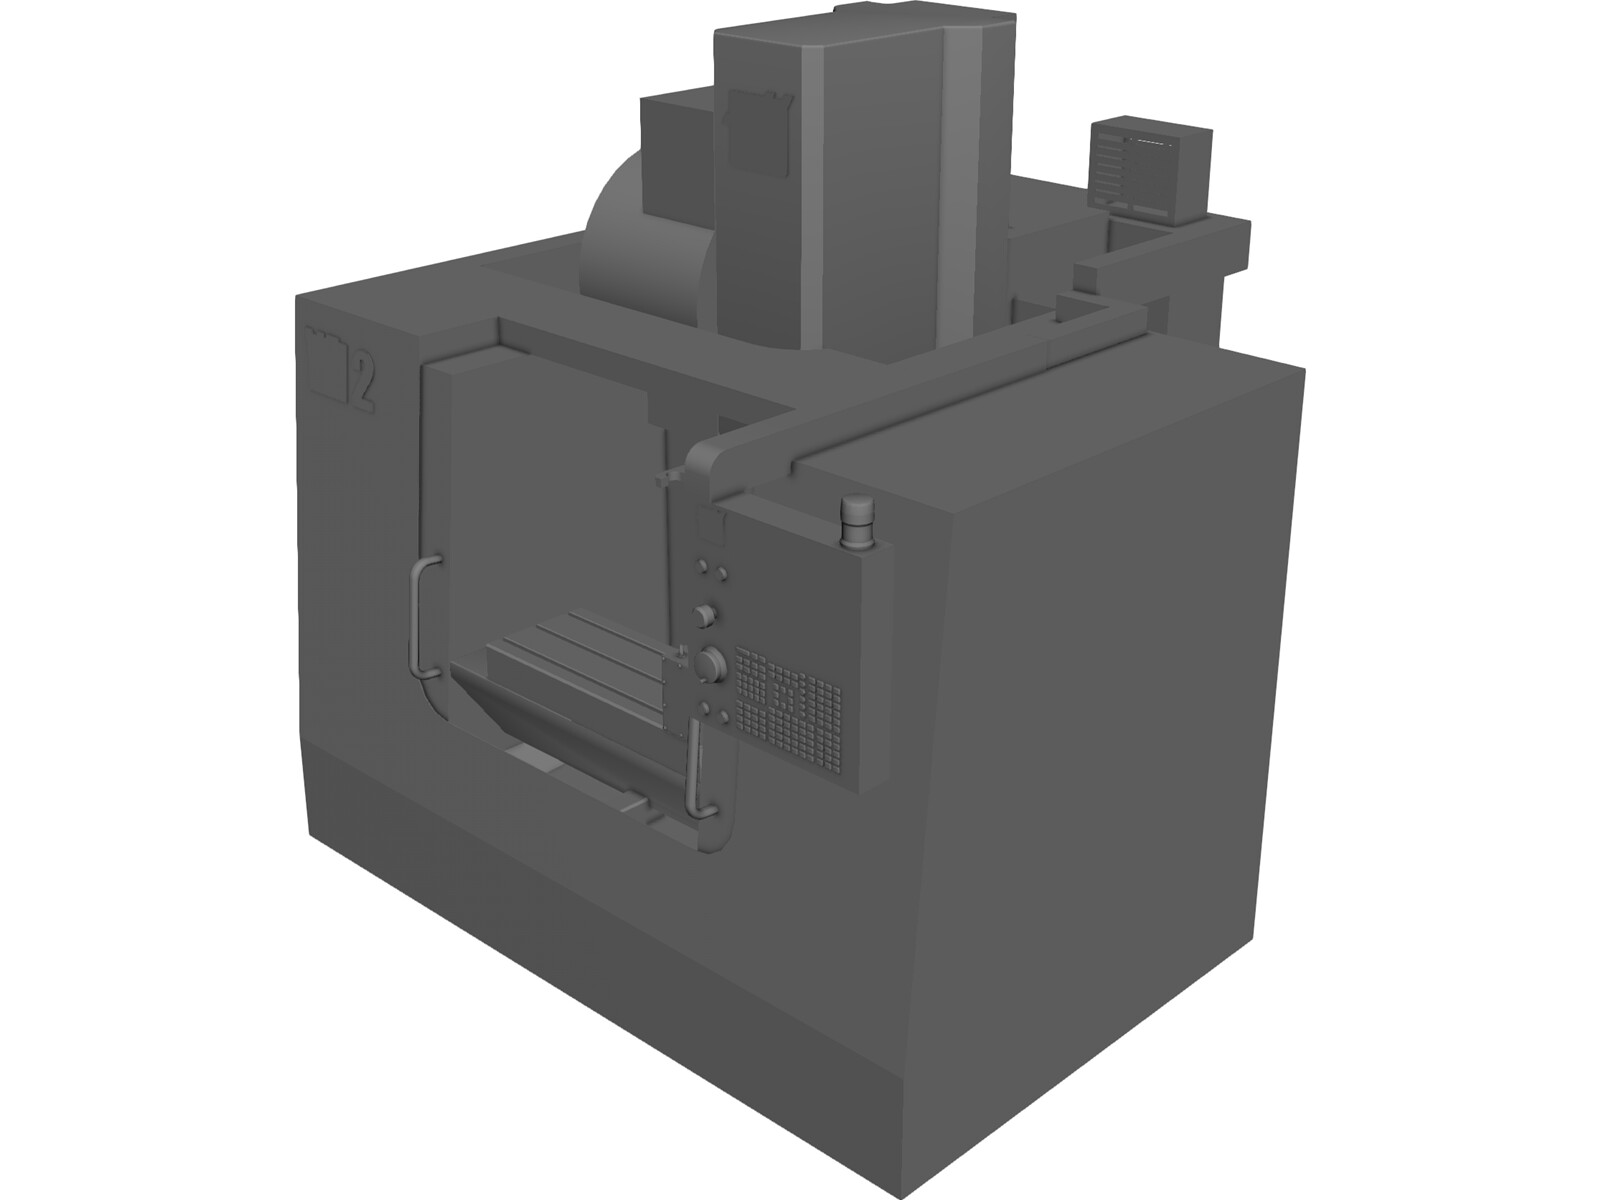 Haas VF-2 CNC Rotary Mill 3D CAD Model